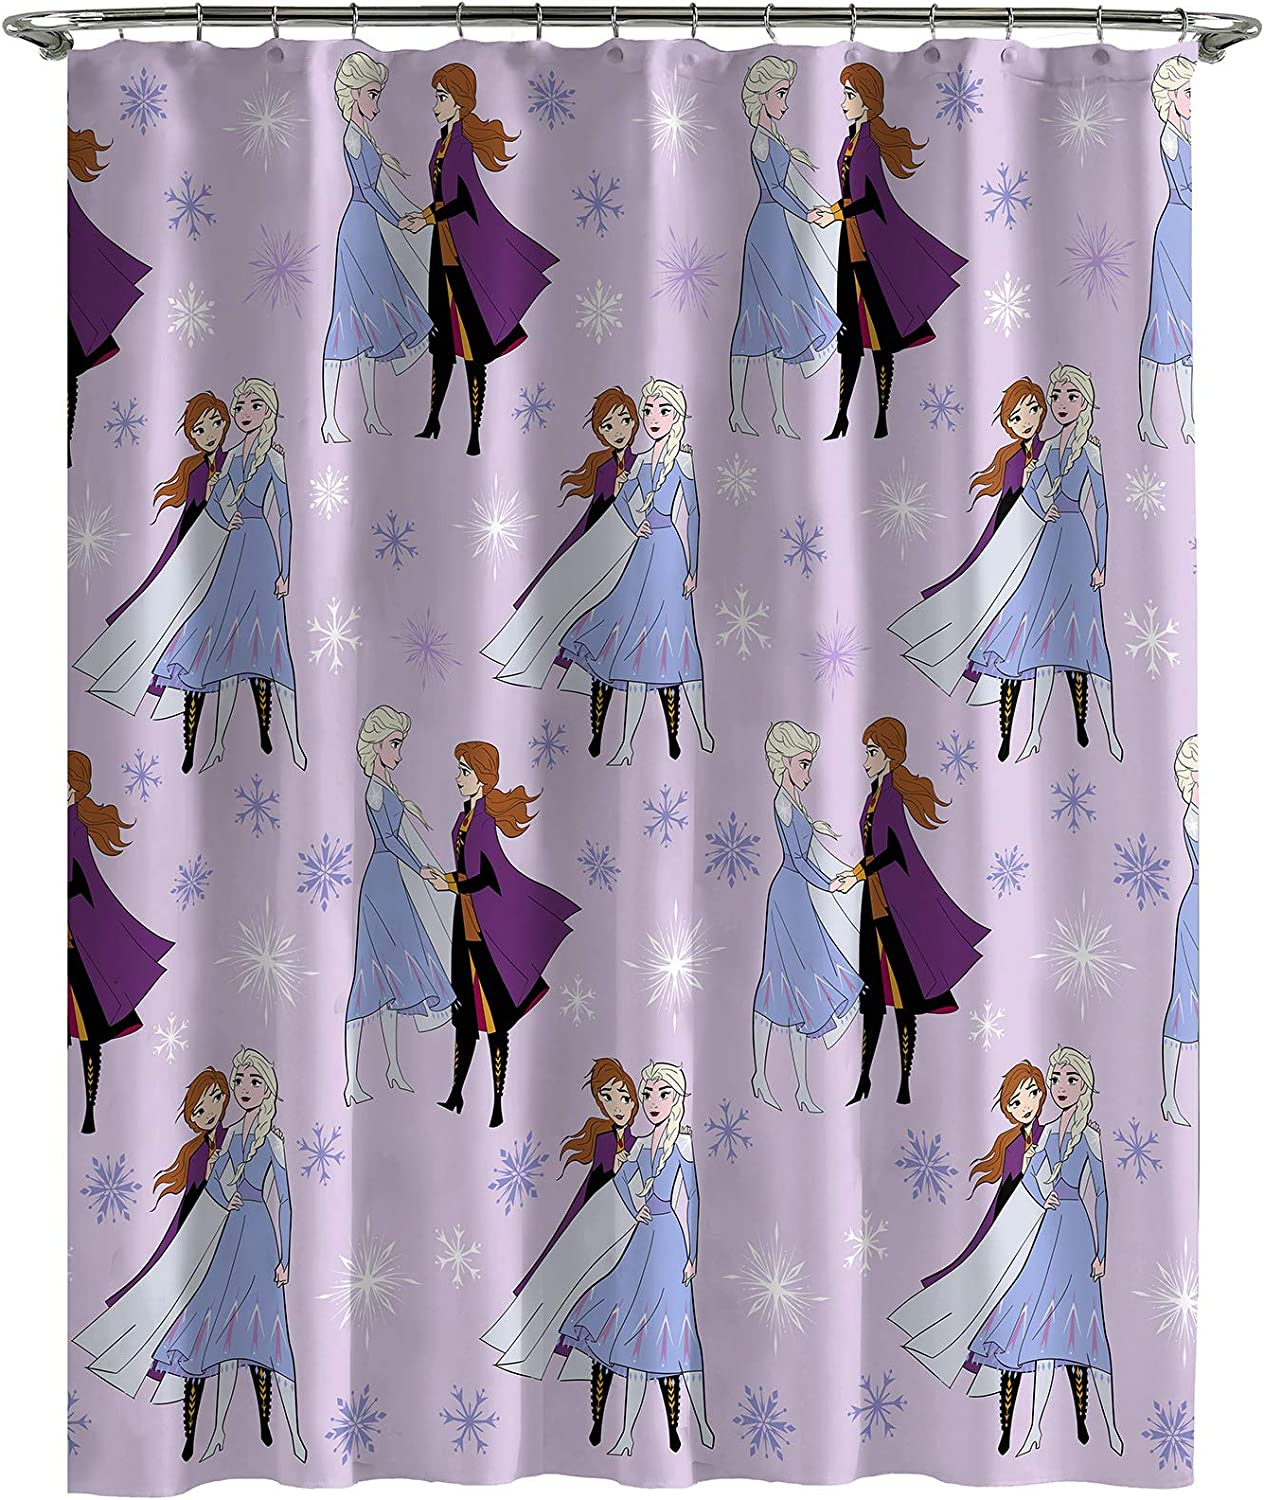 Jay Franco Genuine Disney Frozen Credence ICY Shower Fabric K Care Easy Curtain